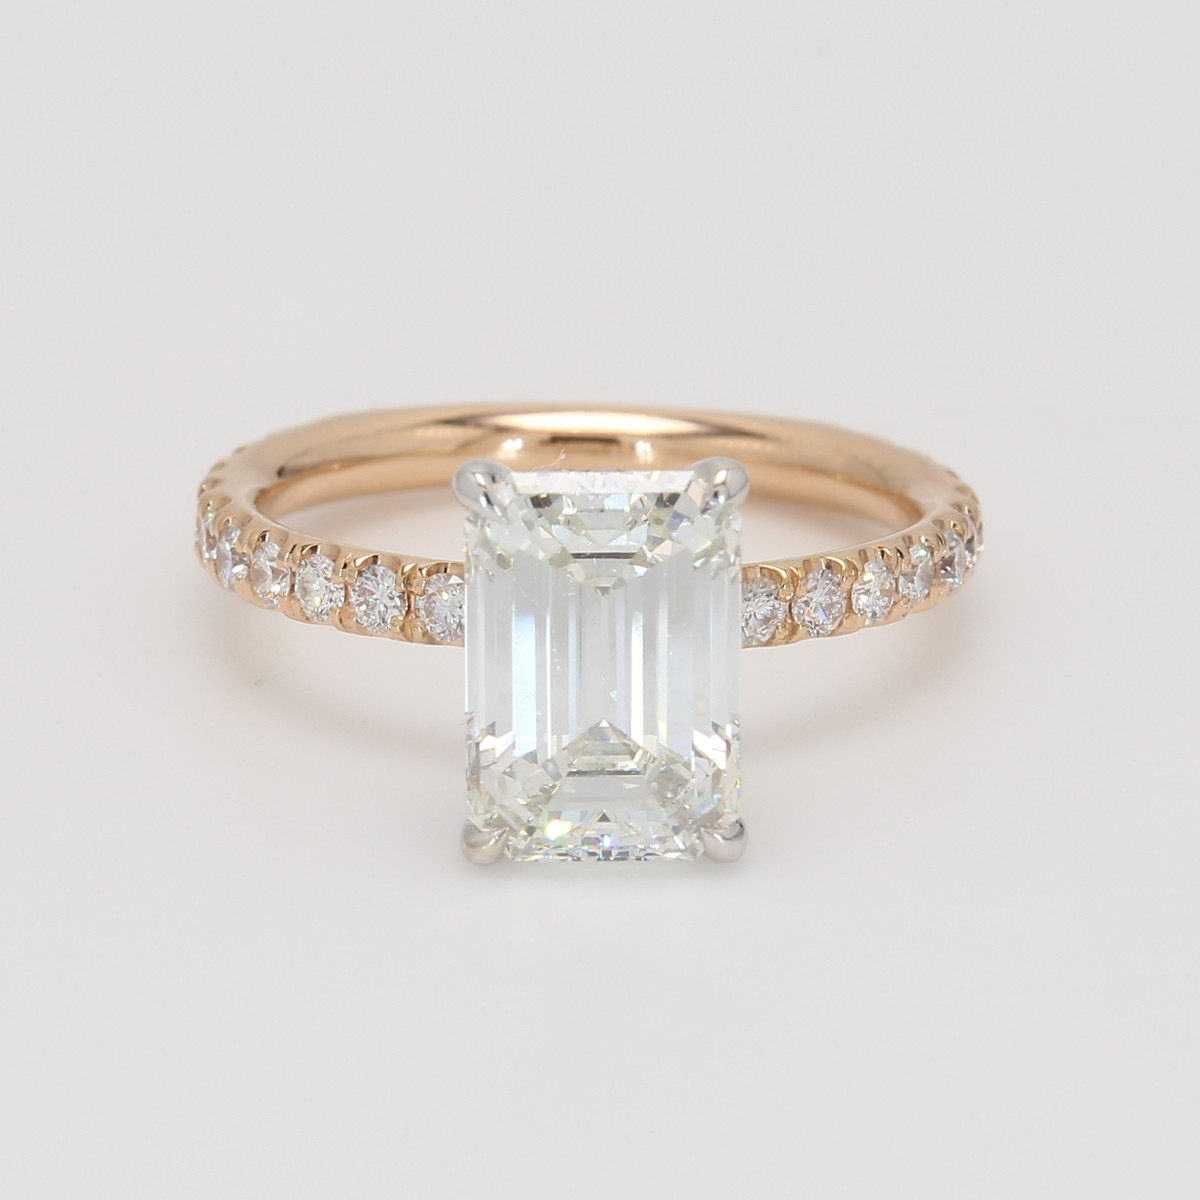 Custom Rose Gold and Platinum Emerald Cut Engagement Ring